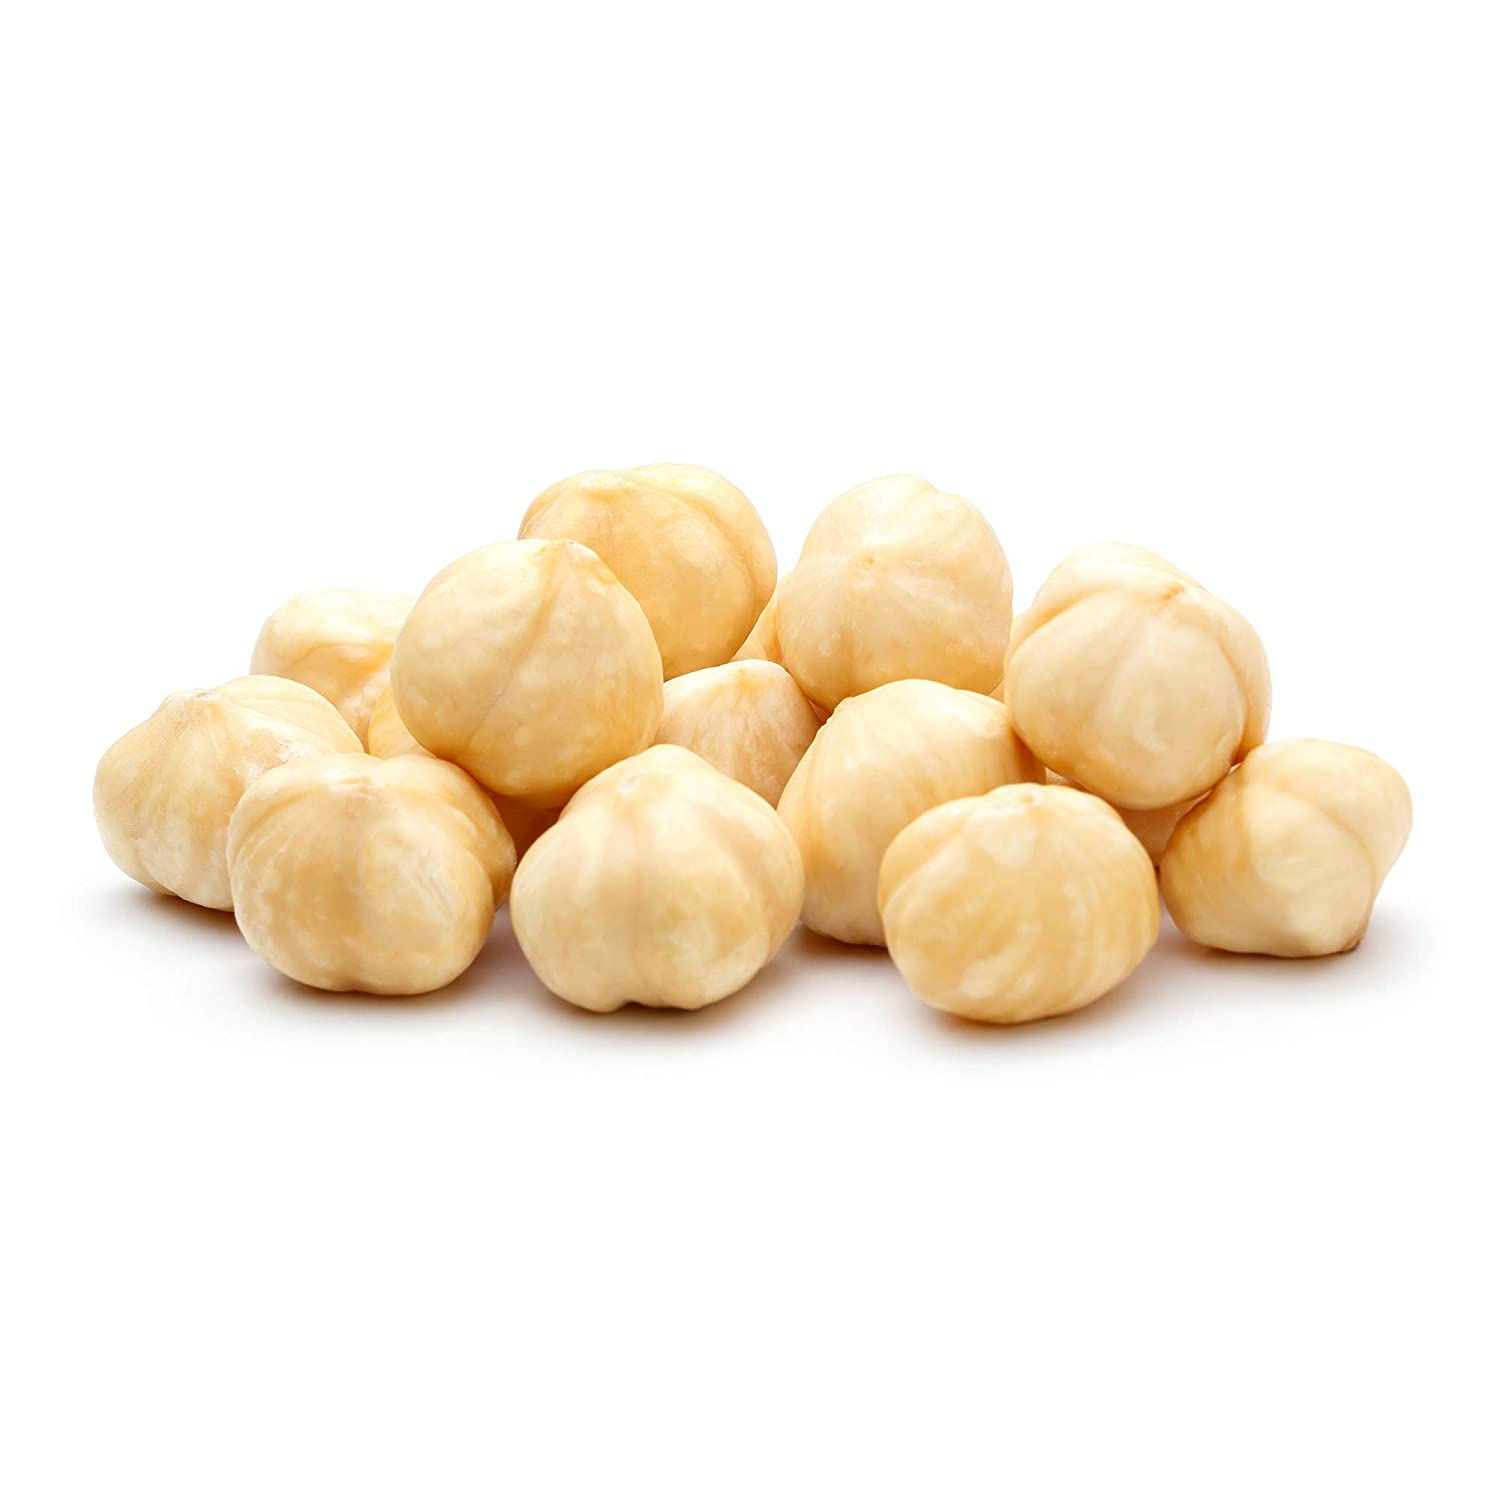 Anna and Sarah Roasted Unsalted Blanched Turkish Hazelnuts in Resealable Bag (2 lb)